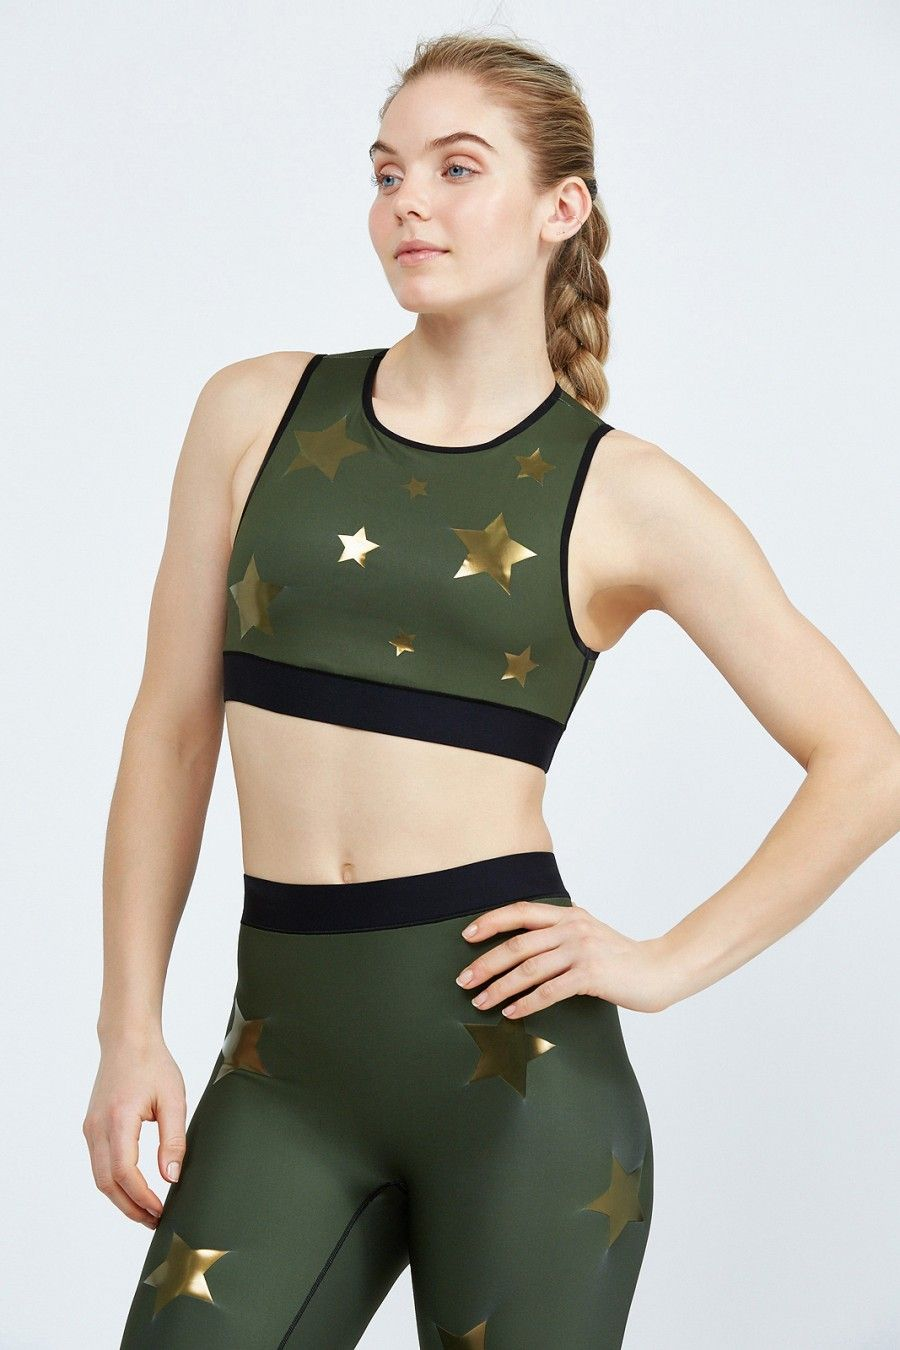 Ultracor Level Silk Knockout Crop Top Small Stars View